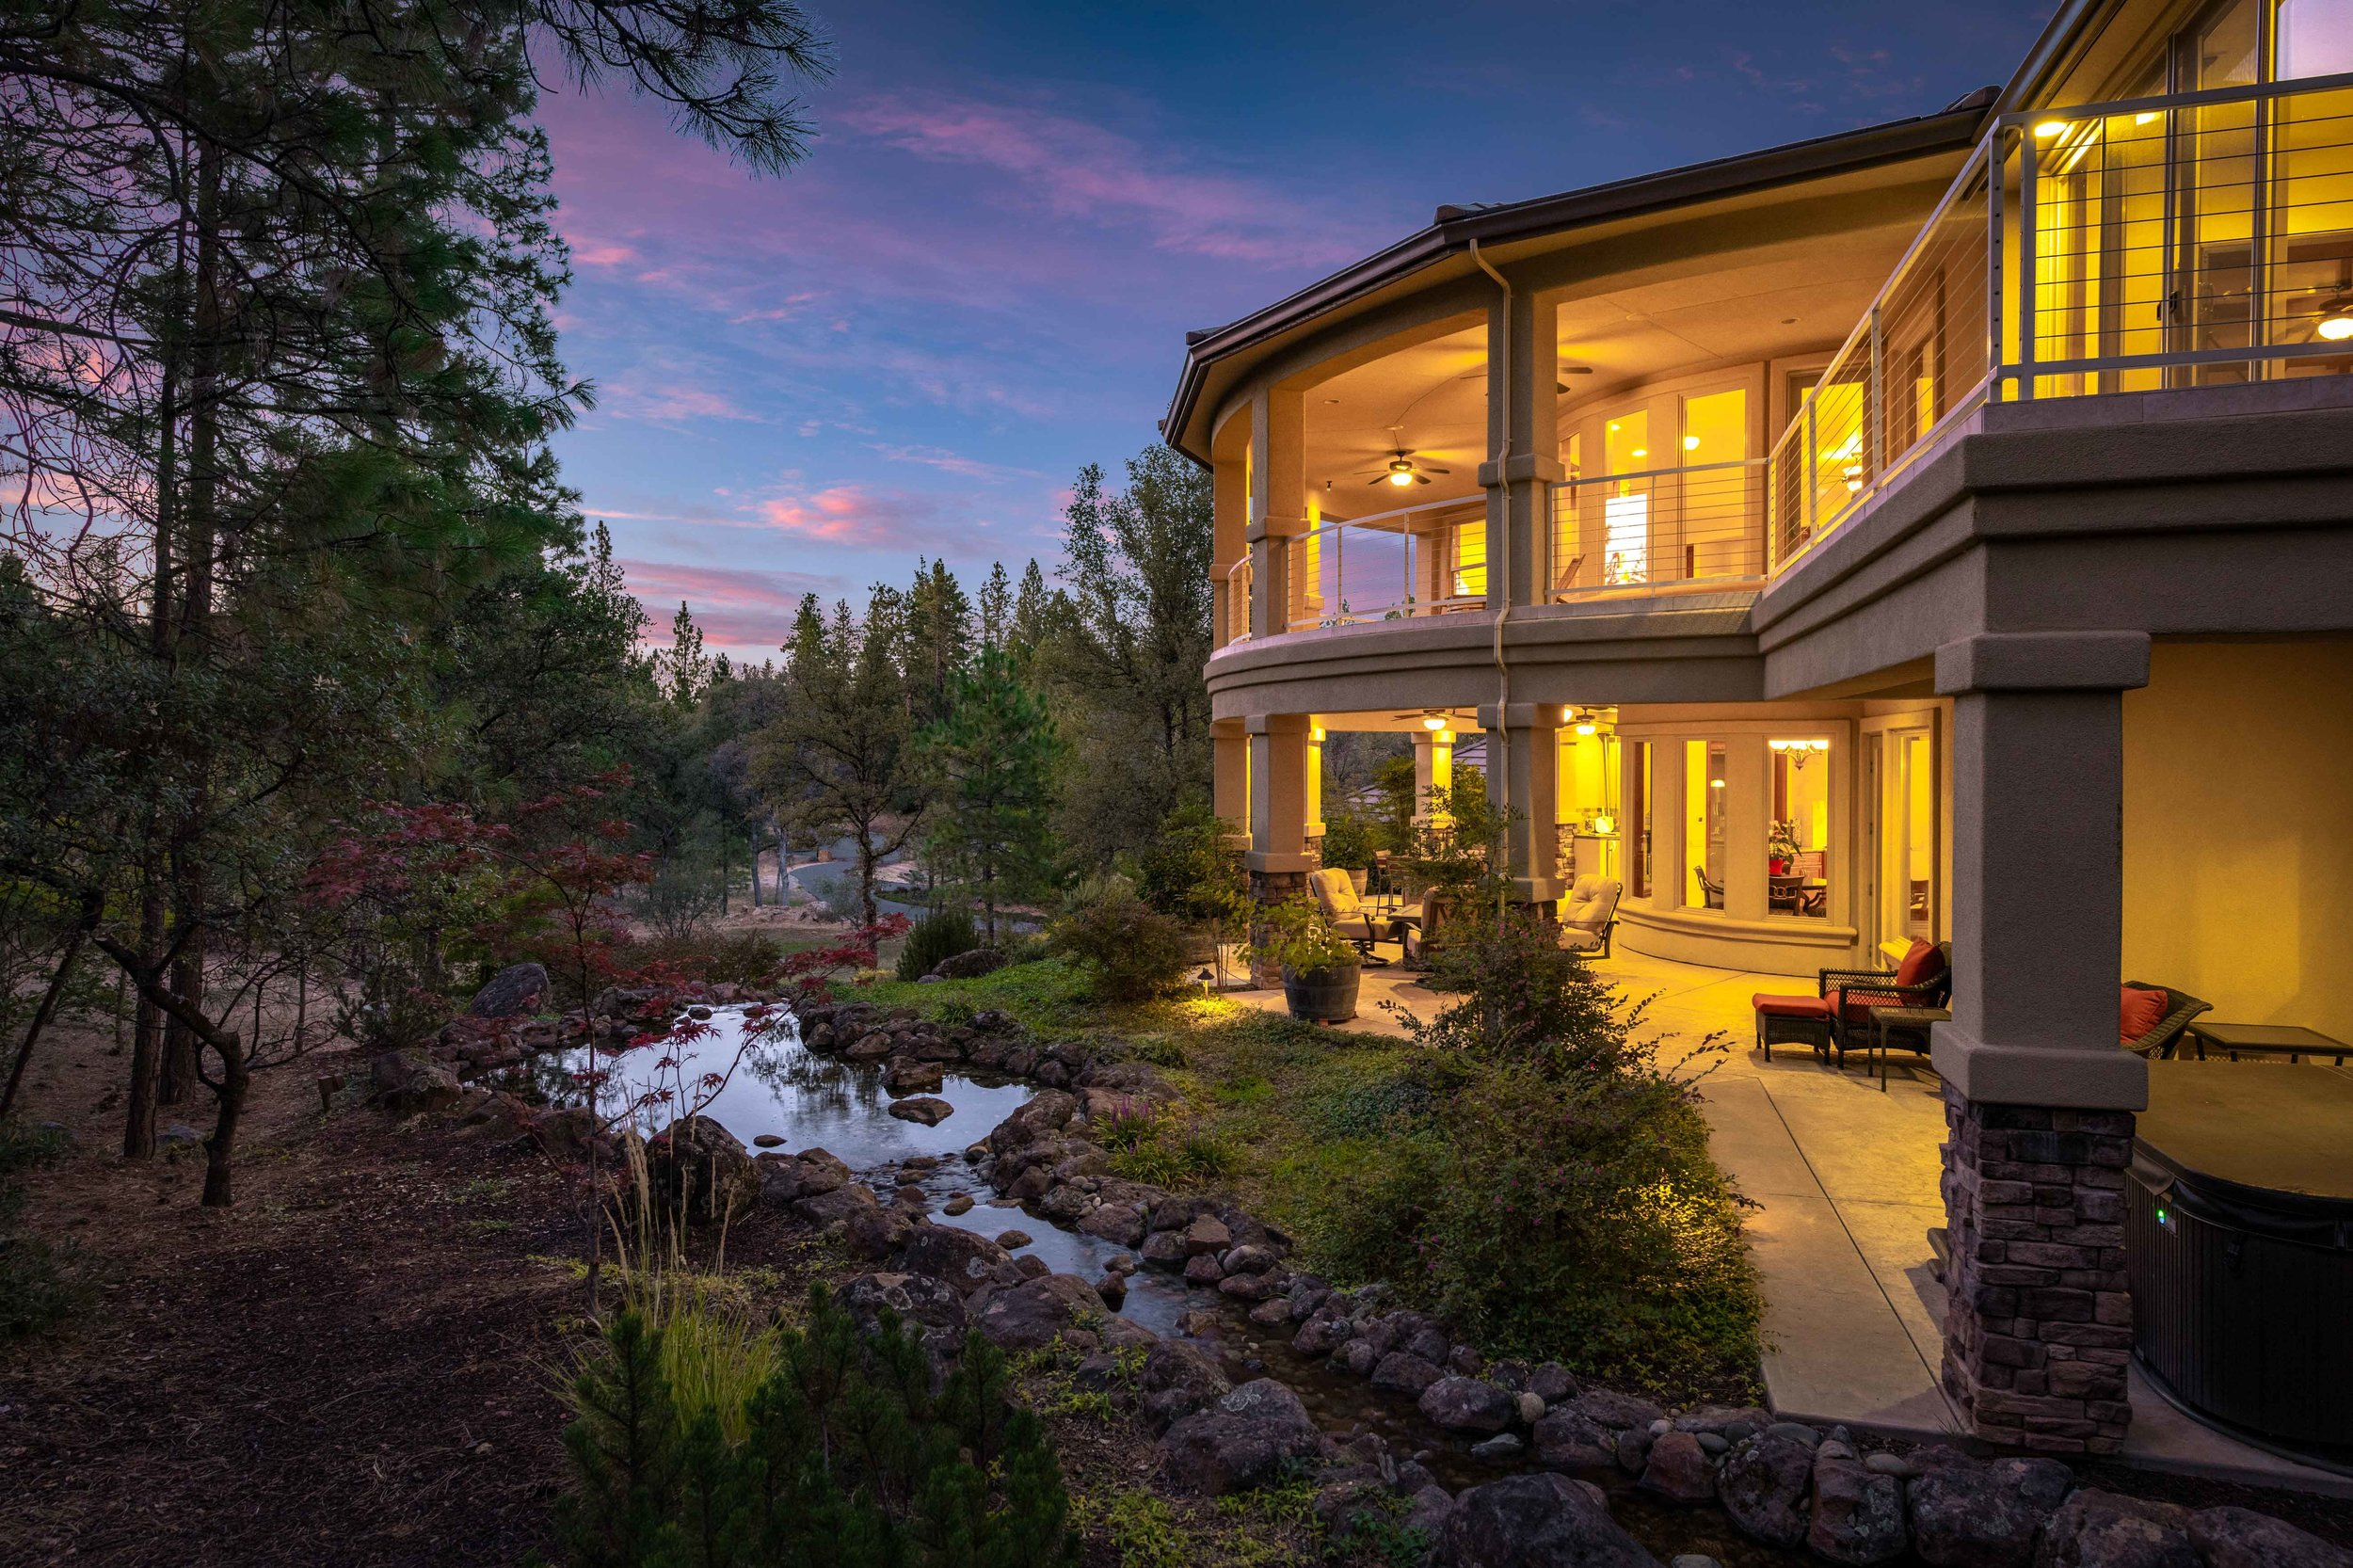 1520 Wood Duck Lane - Twilights - 9.jpg